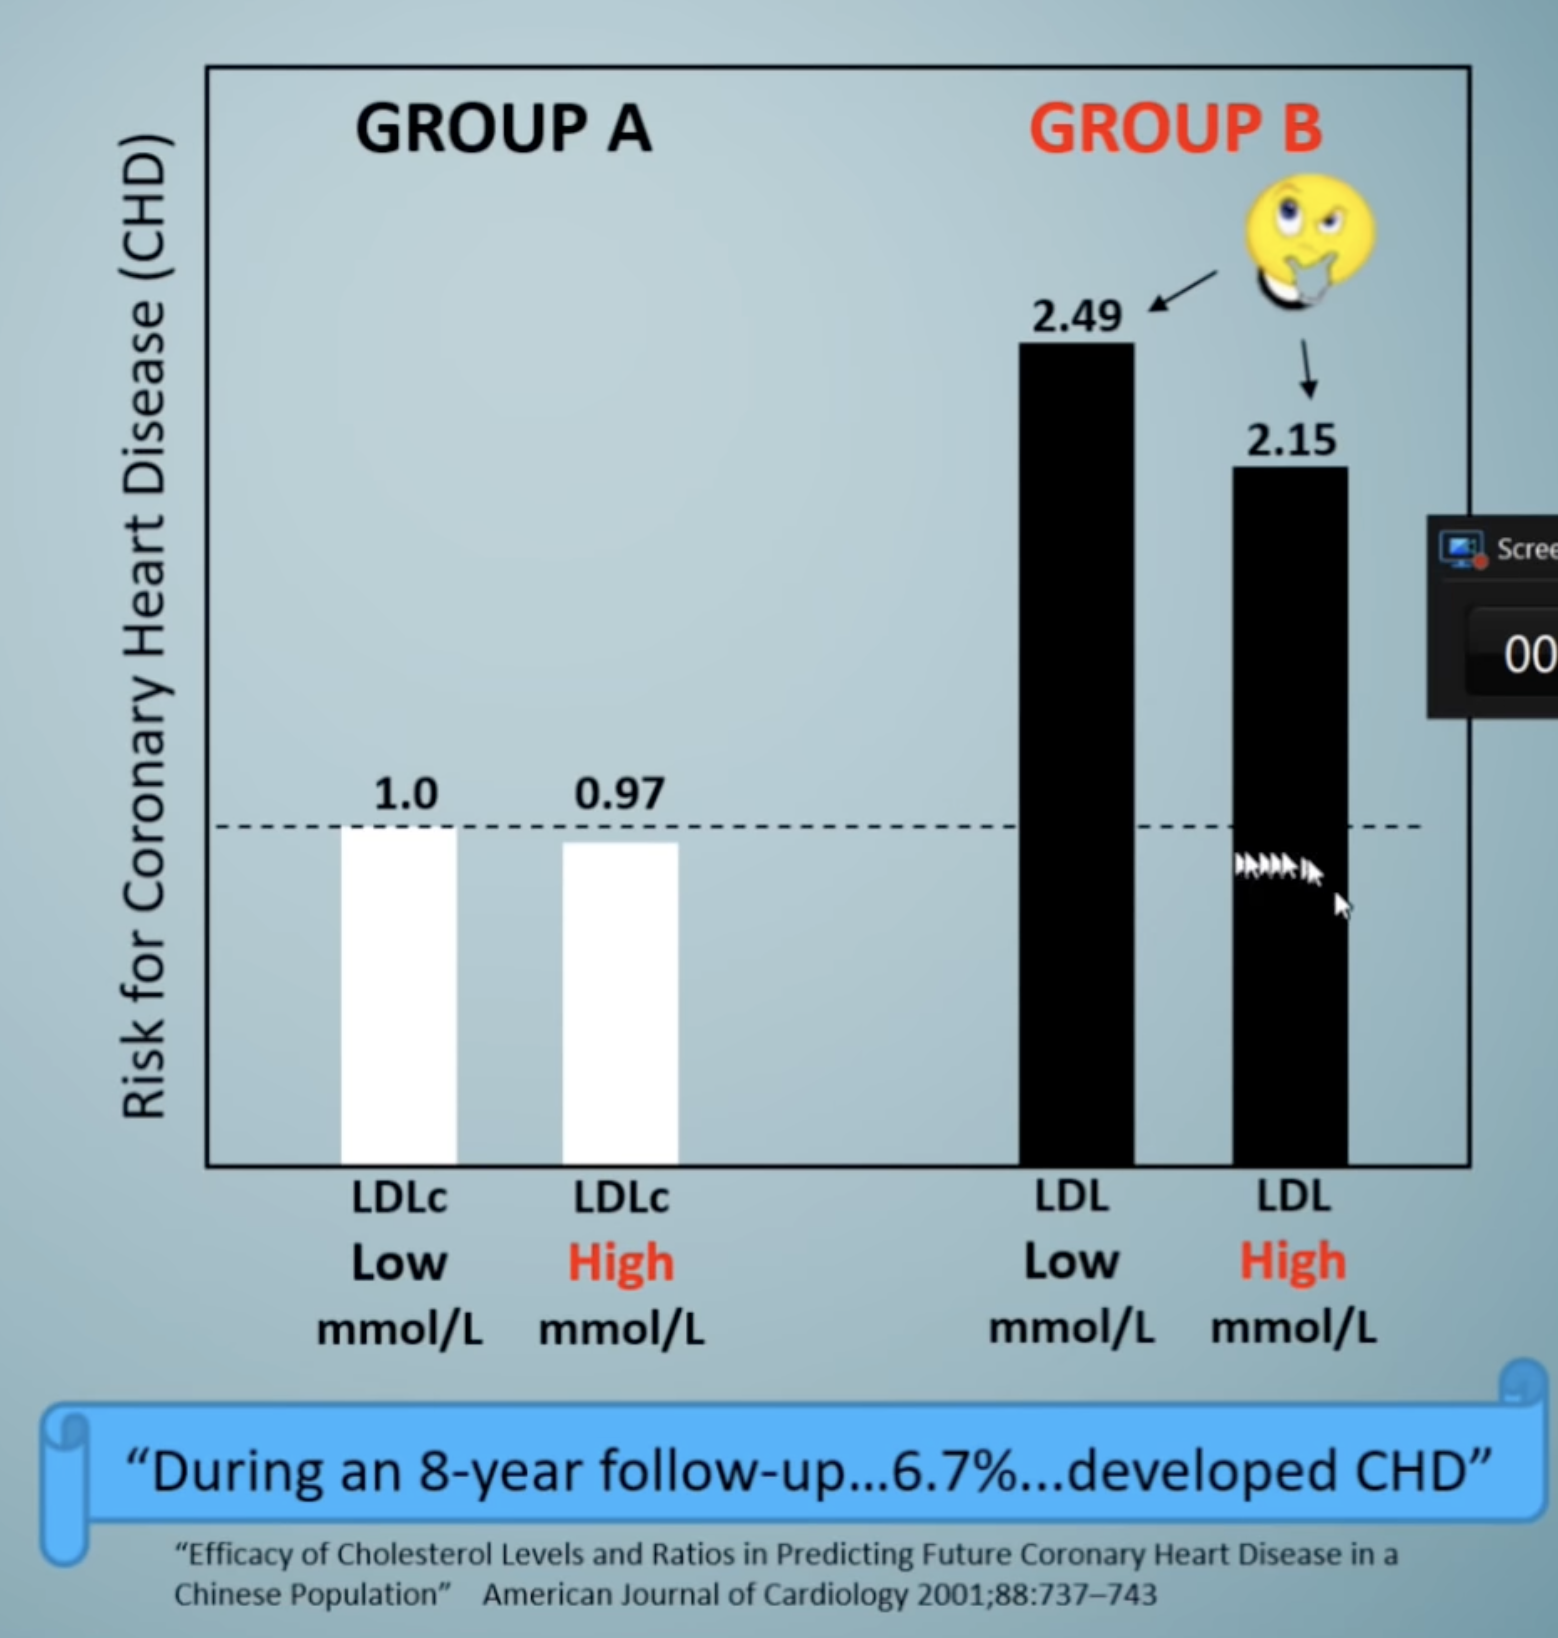 Efficacy of Cholesterol Levels and Ratios in Predicting Future Coronary Heart Disease in a Chinese Population